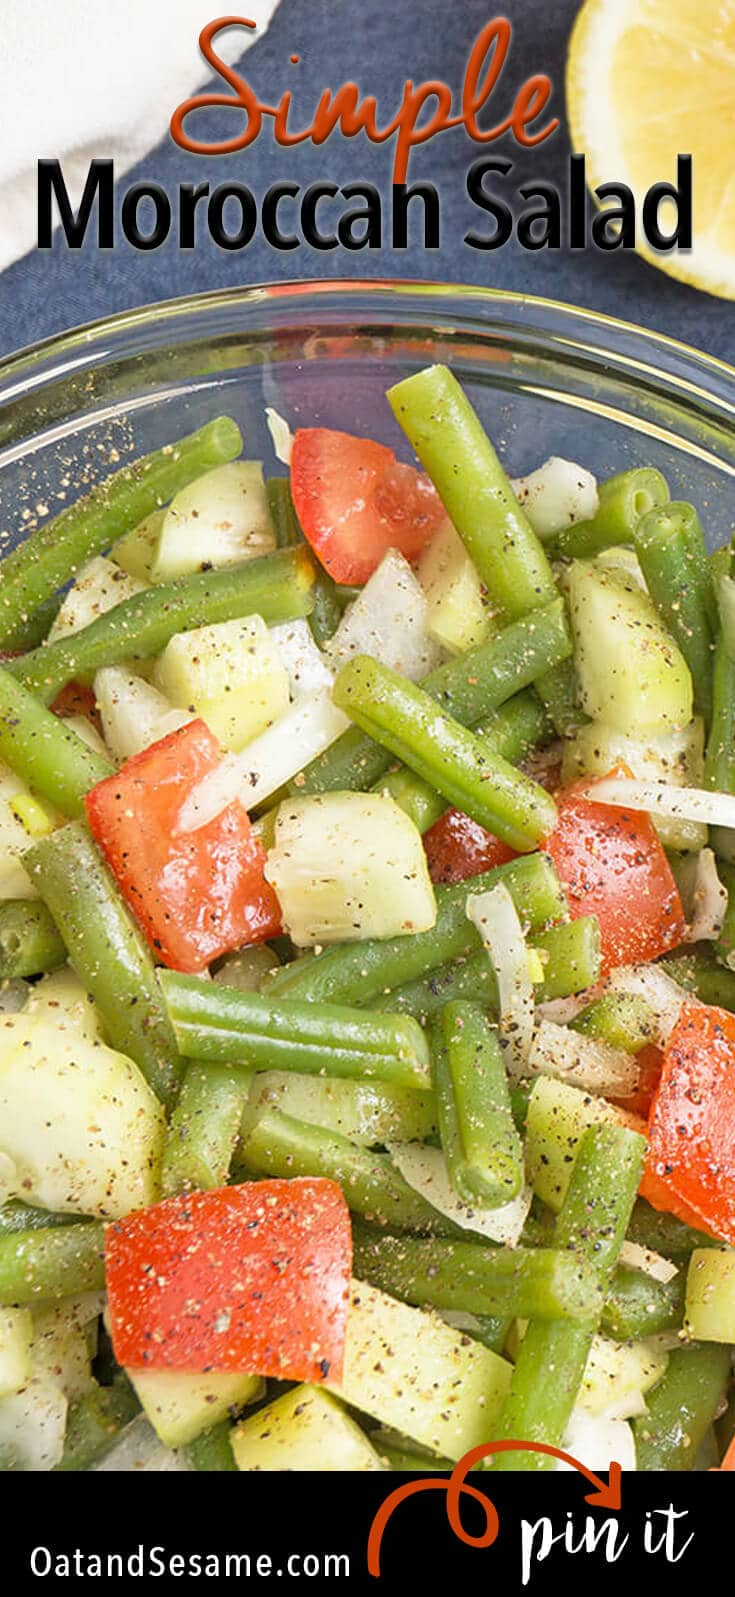 Green Bean and Tomato Moroccan Salad